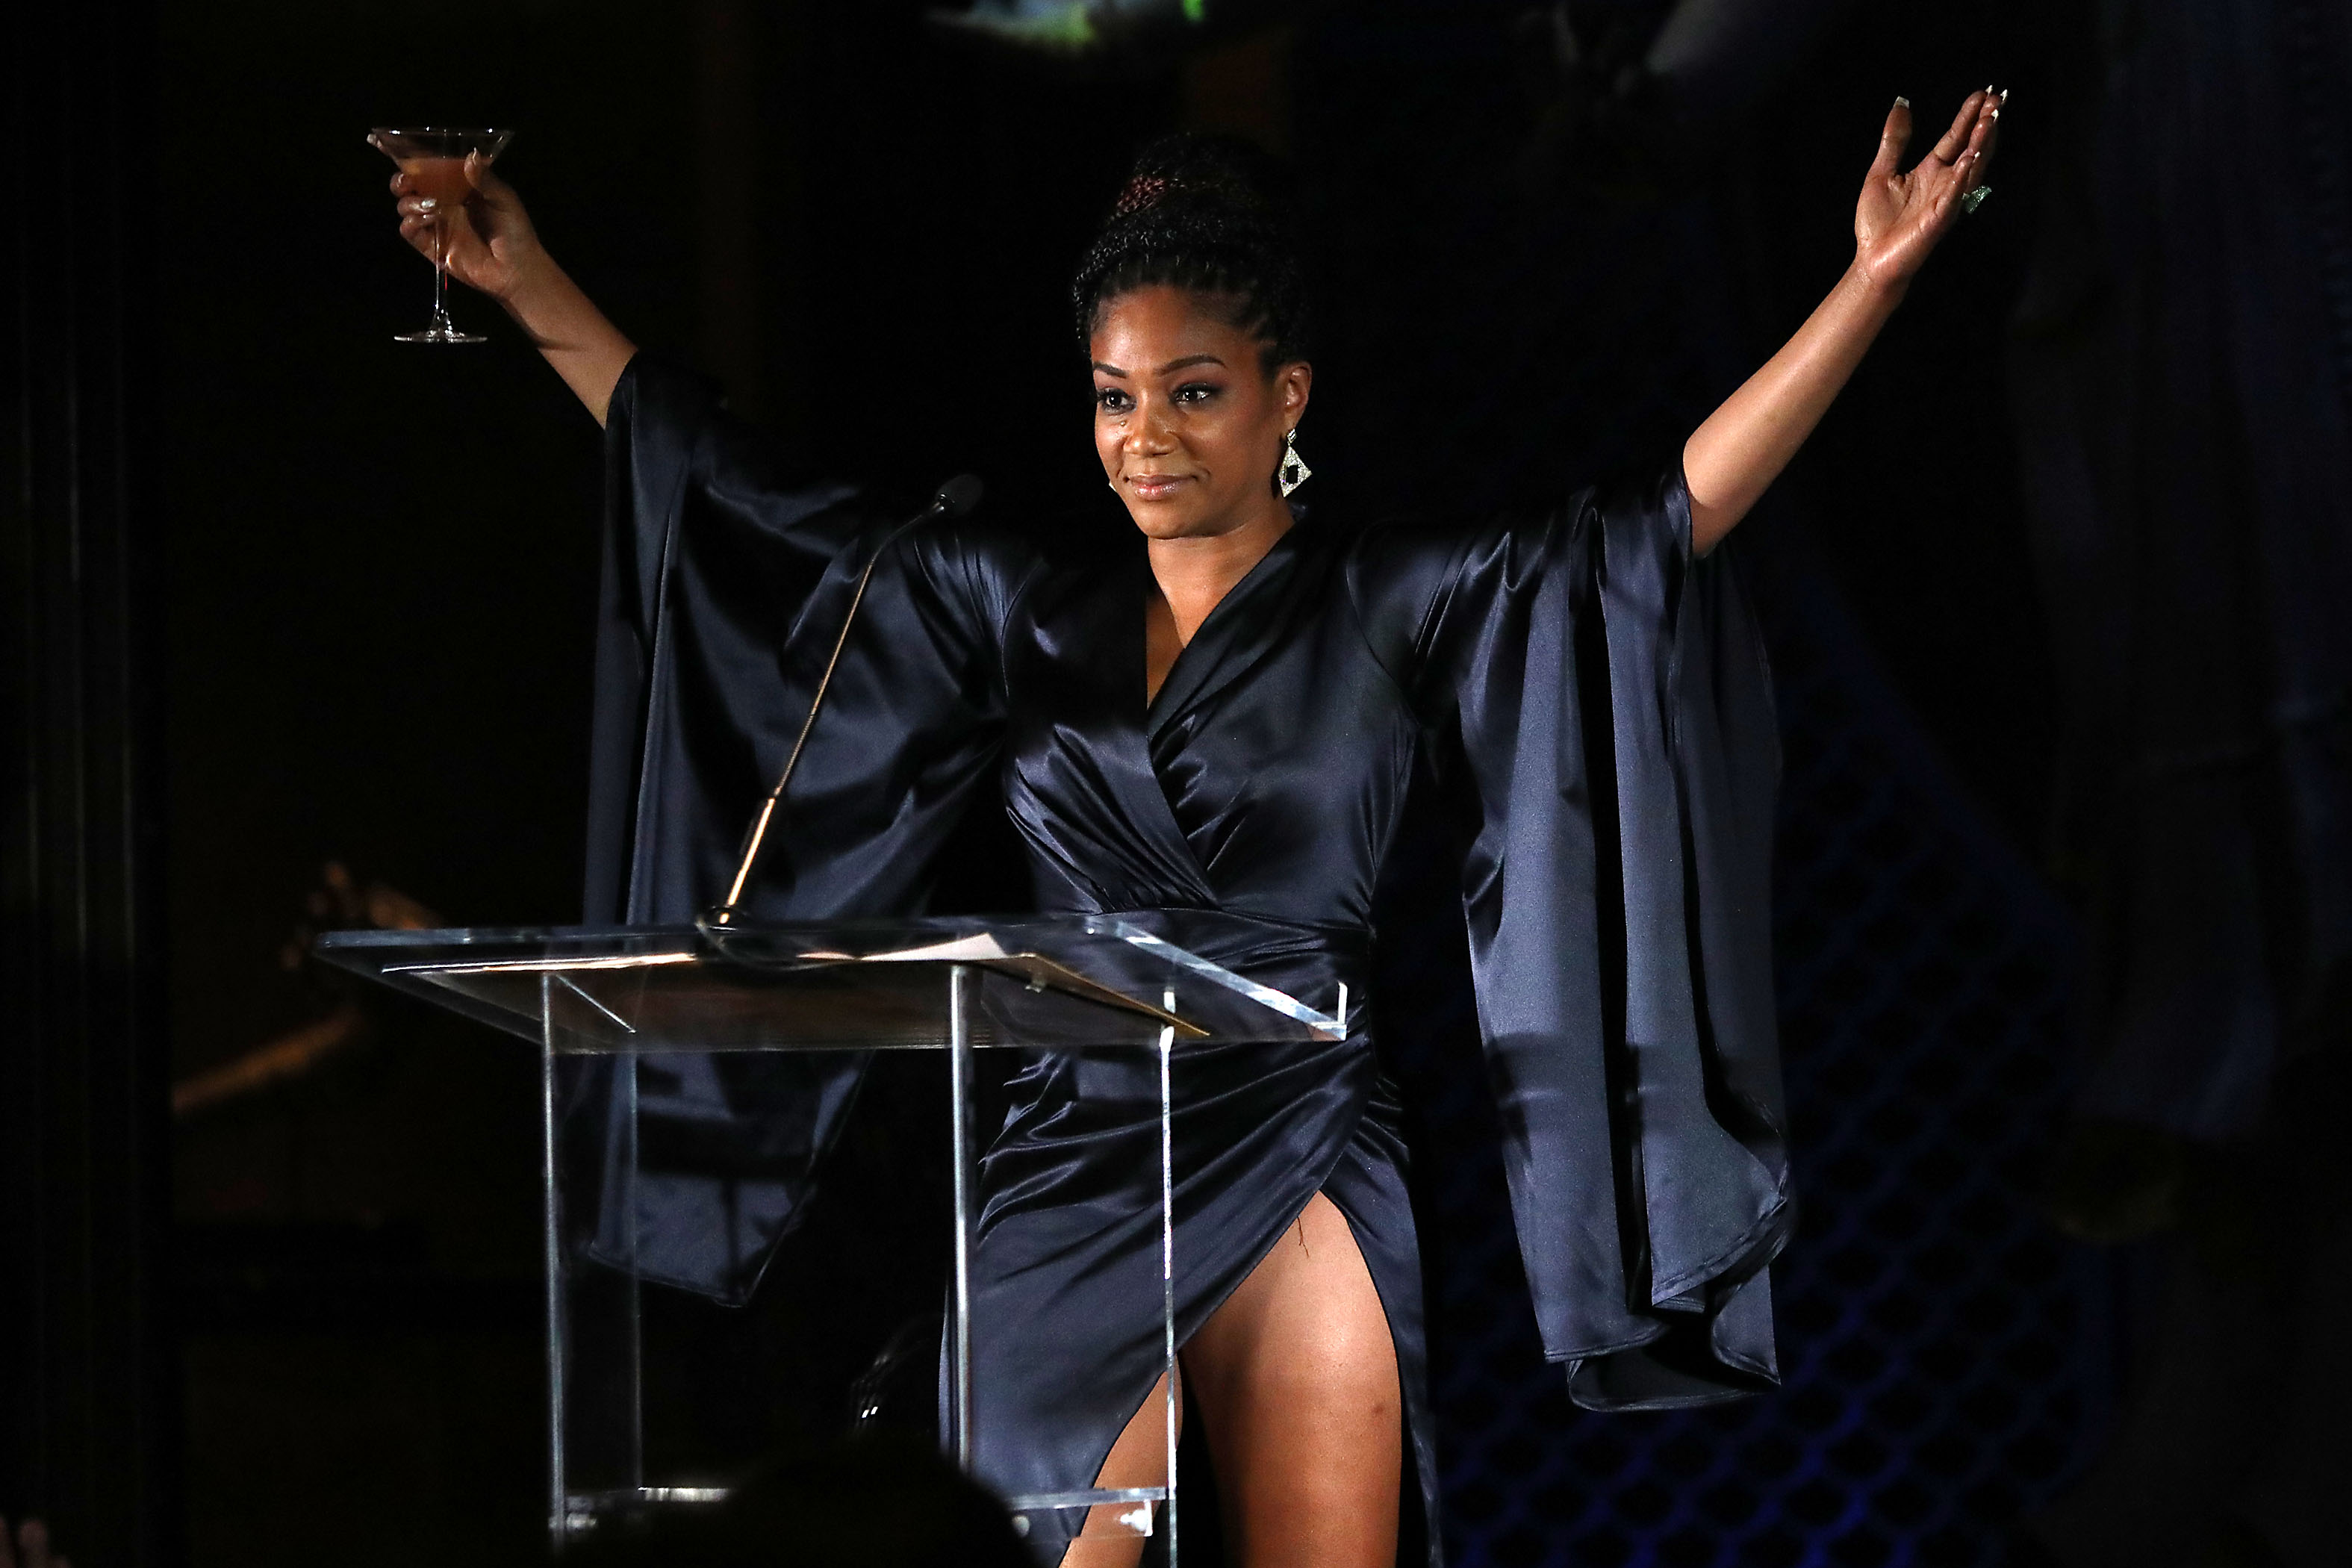 Tiffany Haddish's 18-Minute NYFCC Acceptance Speech Steals Show at Forward-Looking Awards Event